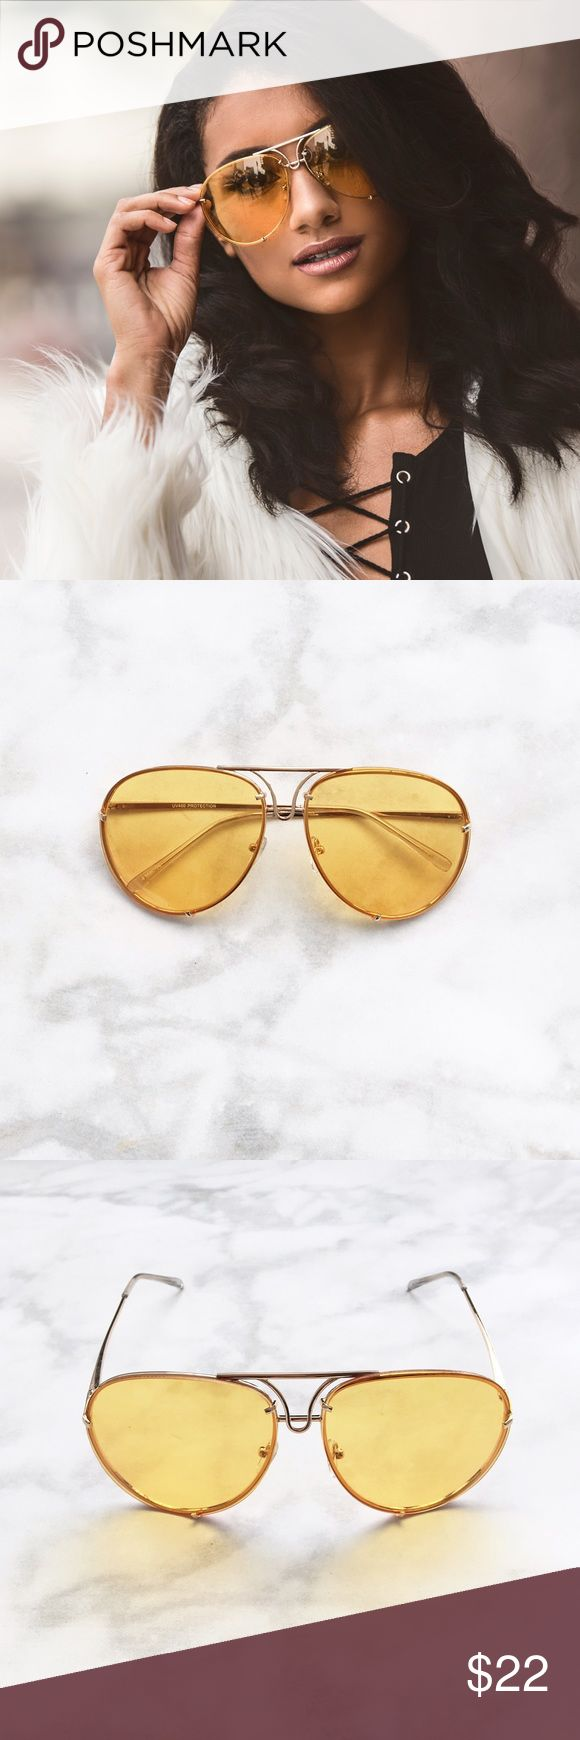 YELLOW LENS AVIATOR SUNGLASSES ✨RESTOCK ALERT! PRICE FIRM!! These sleek and simple oversized aviator sunglasses features a gold metal frame with mustard yellow oversized lenses. Adjustable nose pads.PRICE FIRM!! Clear mustard yellow colored tinted lens. ALL PICTURES TAKEN EXCLUSIVELY FOR STYLE LINK MIAMI AND SHOWING ACTUAL PRODUCTS. PRICE FIRM.  Gold Trim Aviator style Oversized fit Approximate measurements:  Full width 5.75 in Individual lens size: 2.5in W, 2.25 in L Side bar 5.5 in. Style…